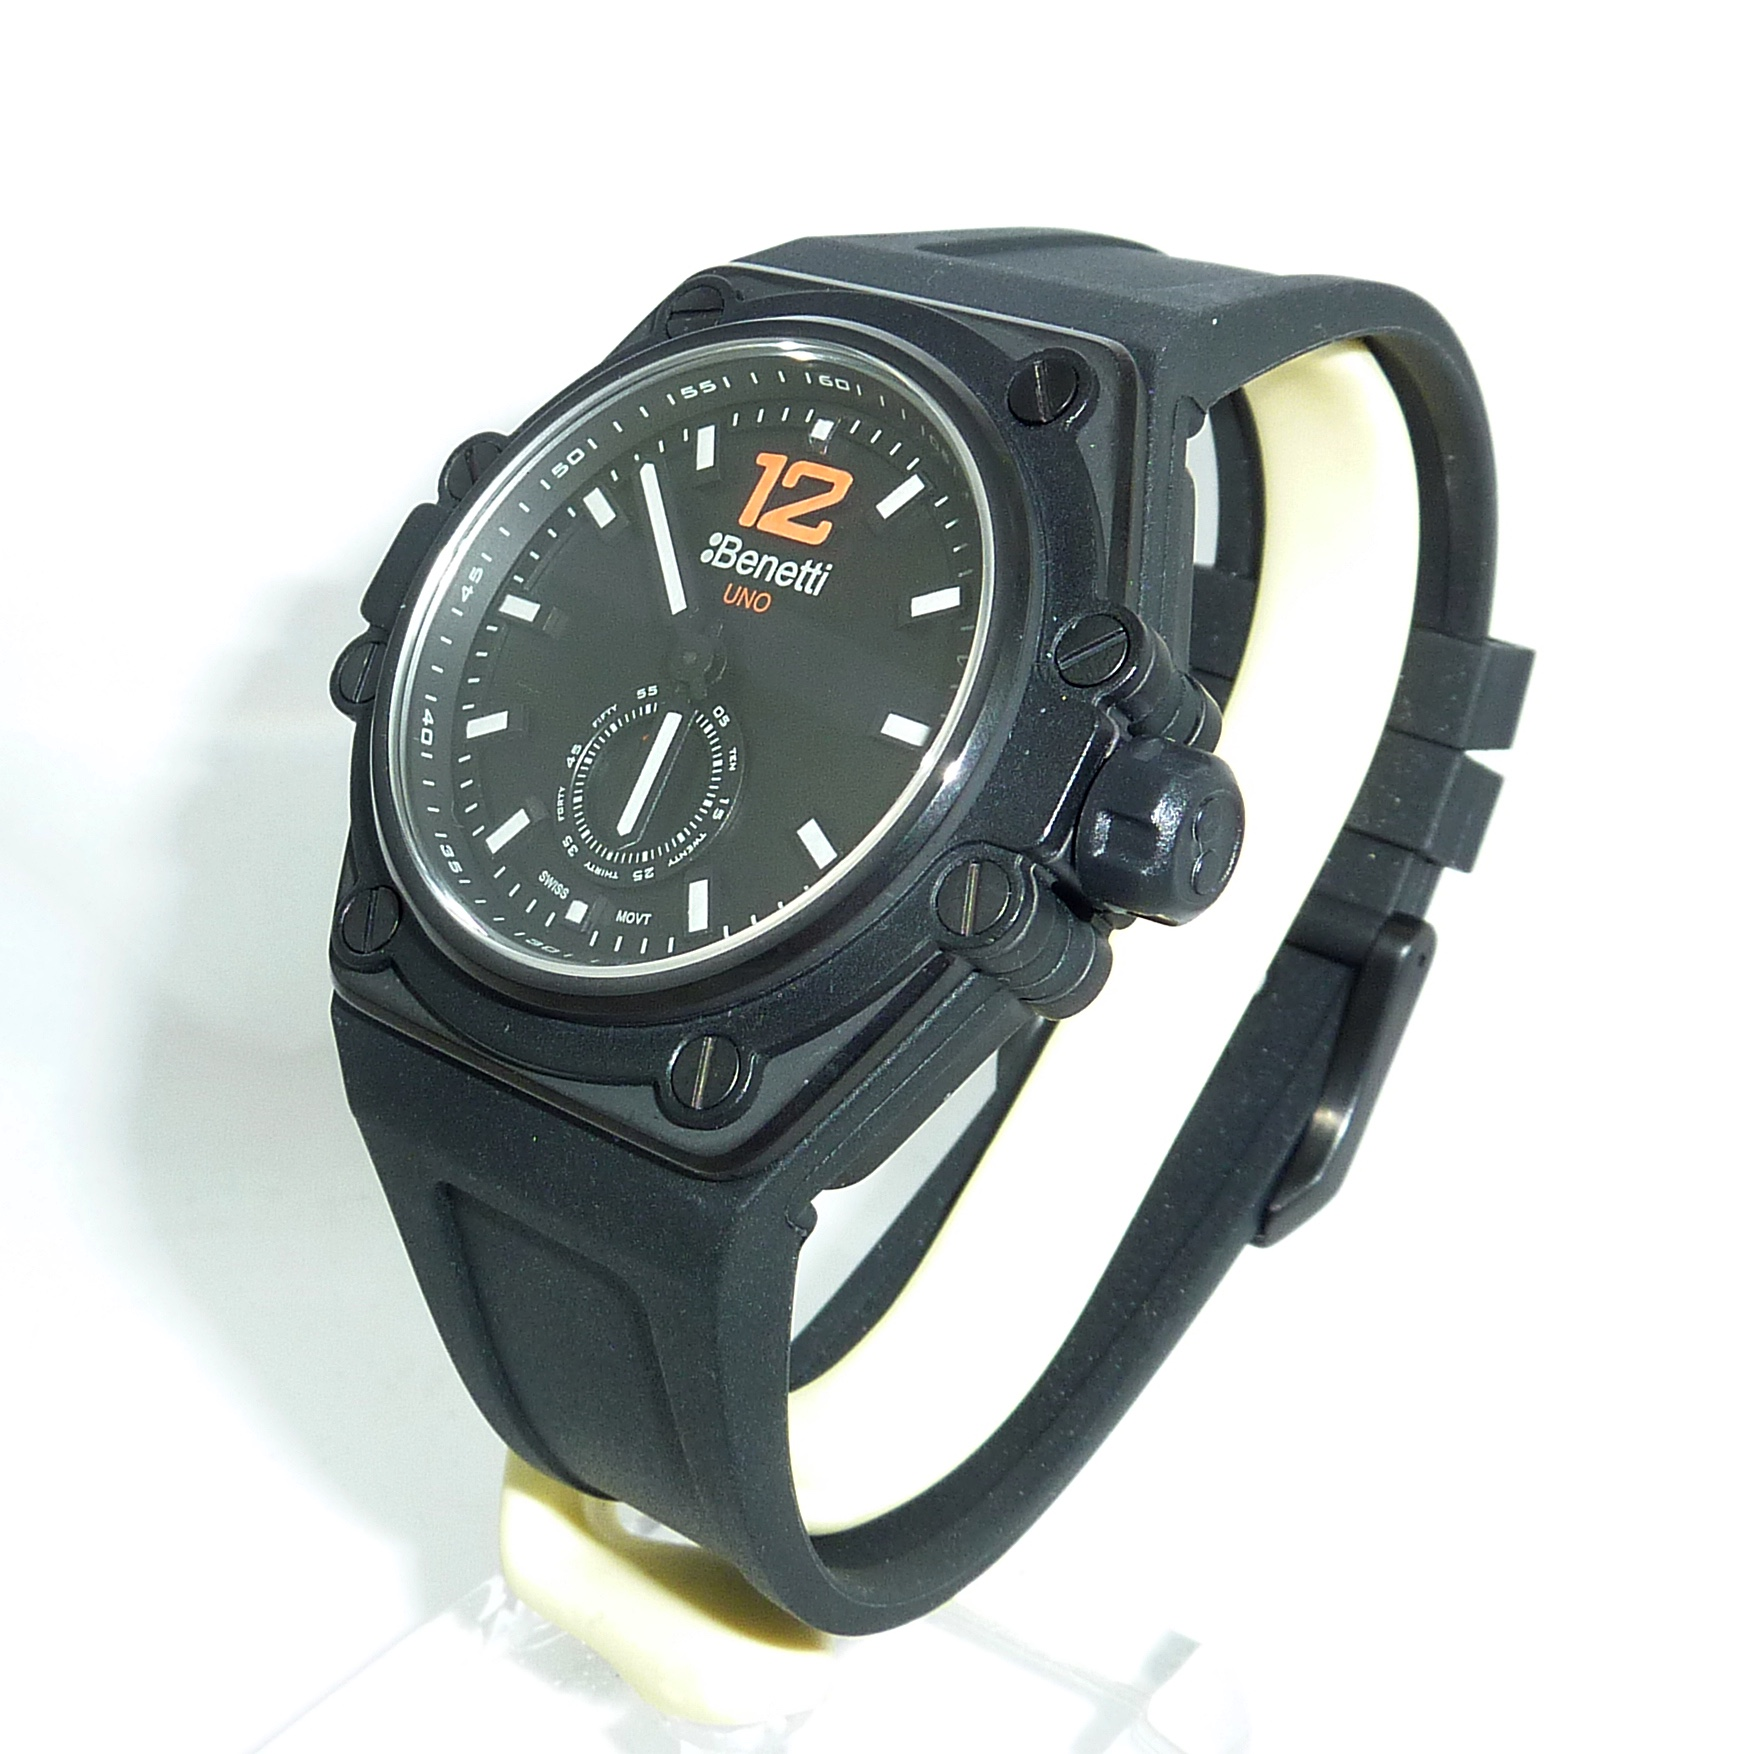 Relojes Watches ReviewBenetti Bb2 Uno – Asequibles 5RqS3ALc4j